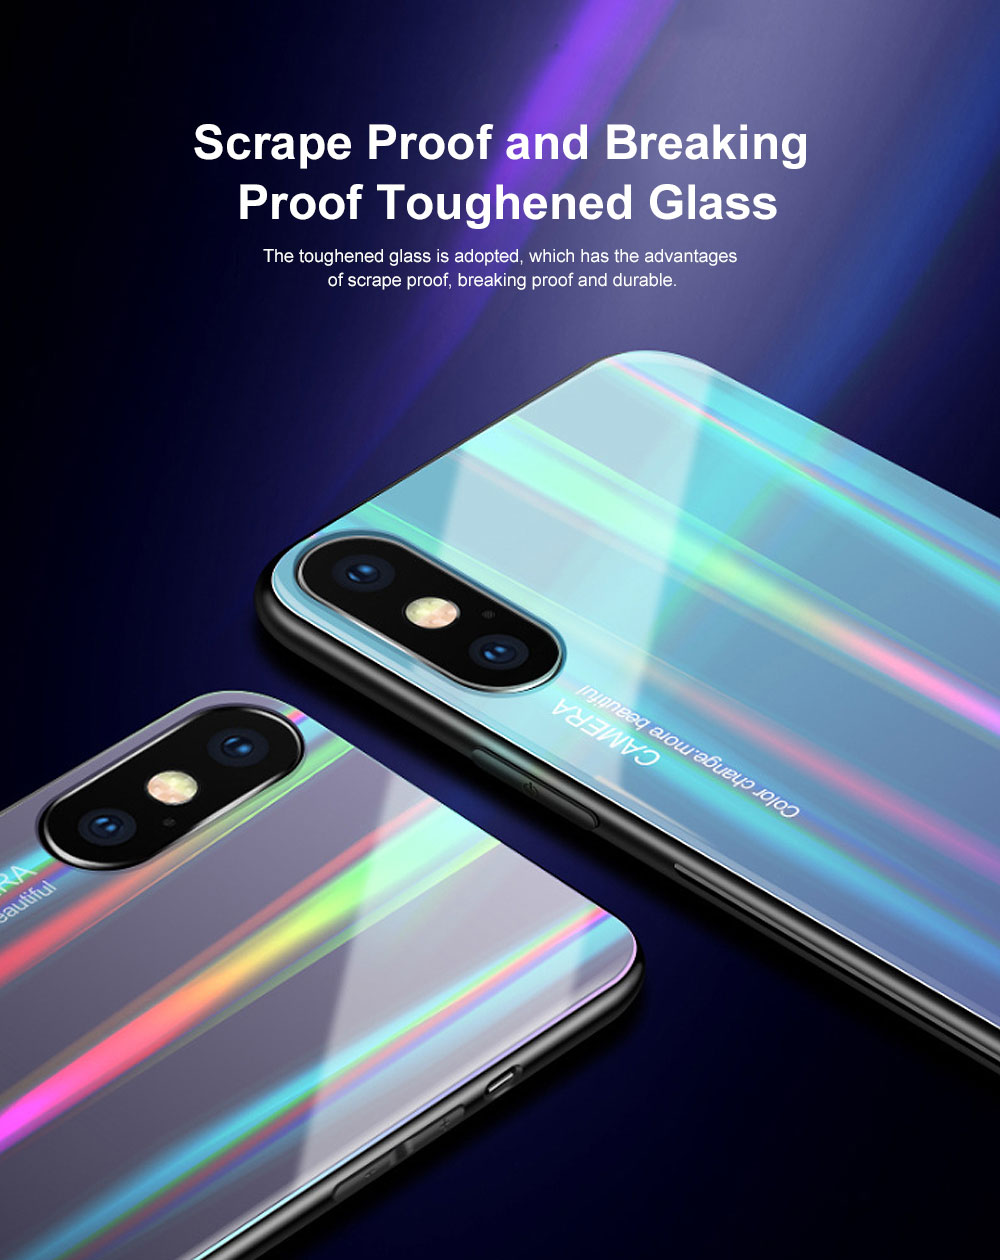 Aurora Gradient Phone Case, Toughened Glass Mobile Phone Case, Case Cover with Soft Edge, Minimalist Phone Case for iPhone 2